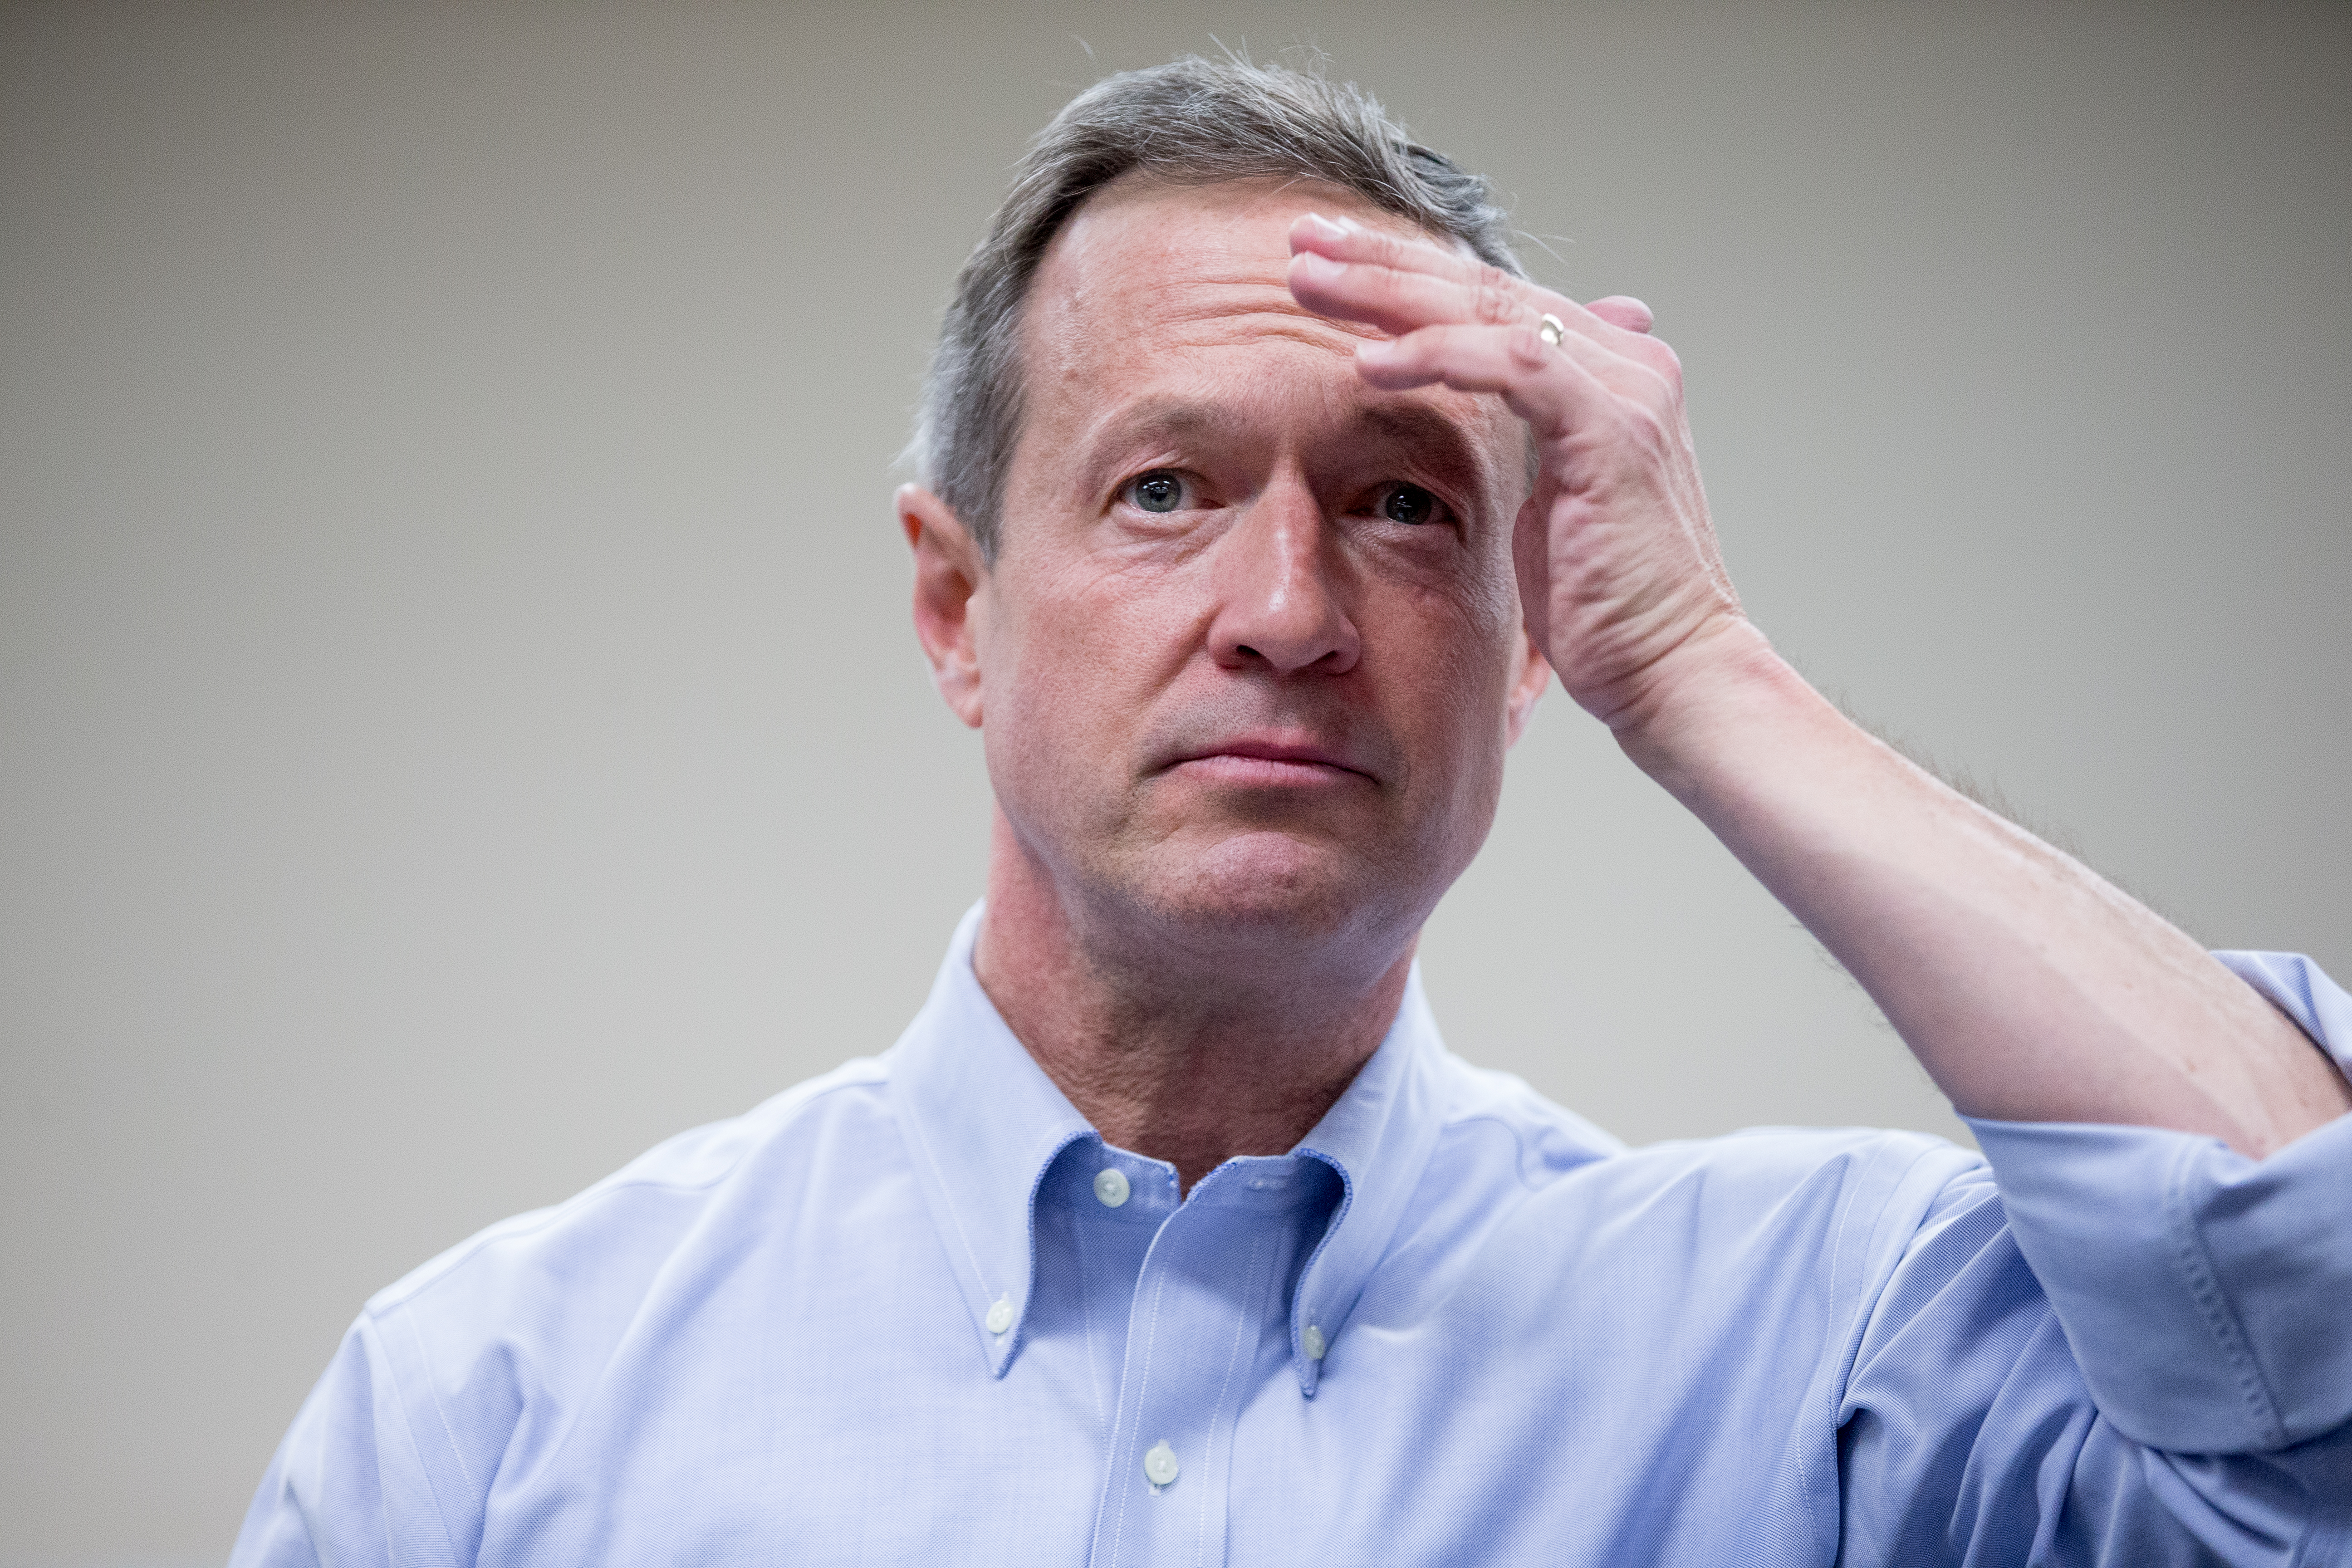 Democratic presidential candidate, former Maryland Gov. Martin O'Malley pauses as he speaks at the West Des Moines Public Library in West Des Moines, Iowa, Saturday, Jan. 2, 2016.